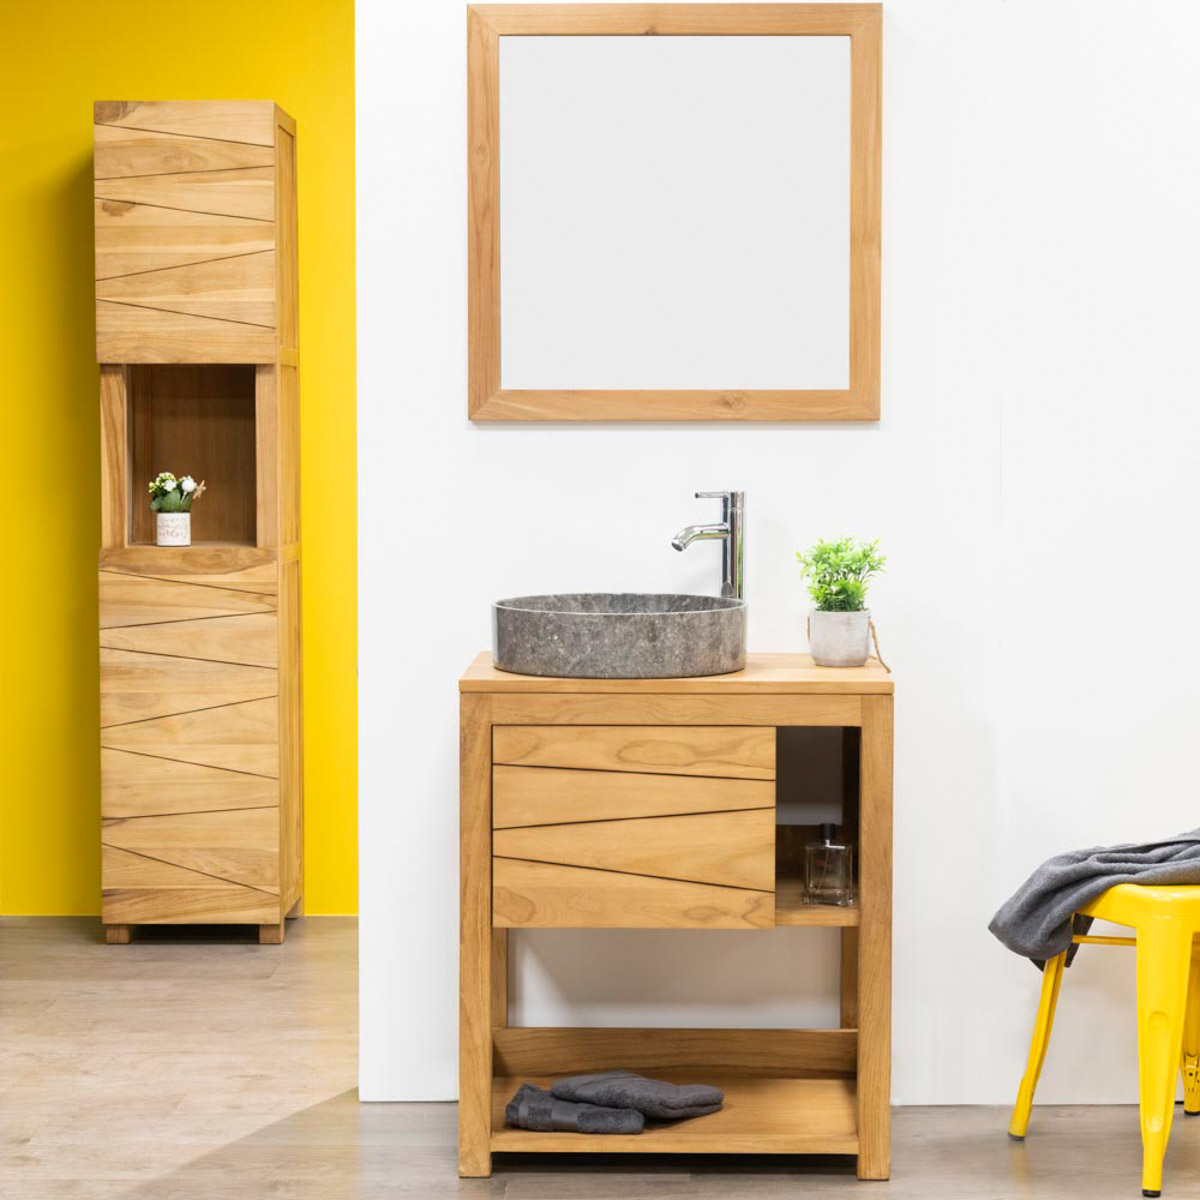 Meuble sous vasque simple vasque en bois teck massif cosy rectangle naturel l 67 cm - Meuble salle de bain en promo ...